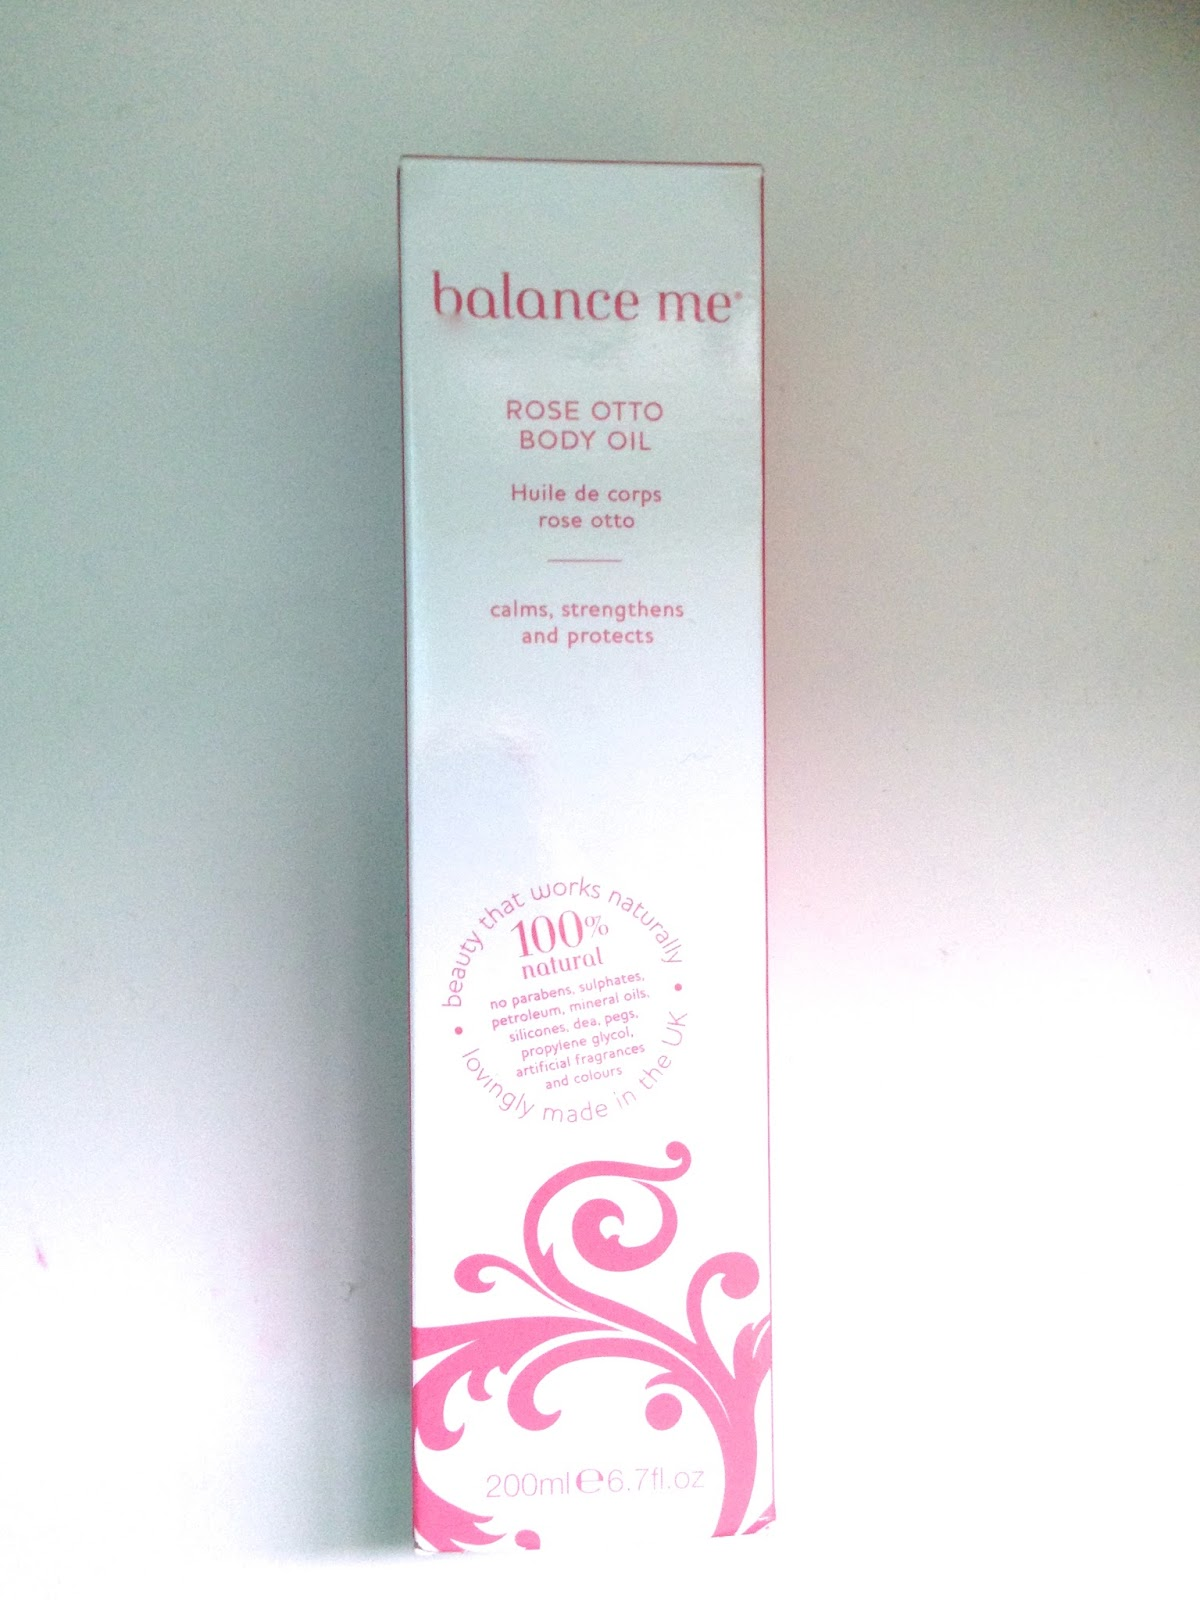 Balance Me Rose Otto Body Oil - #balancemehome